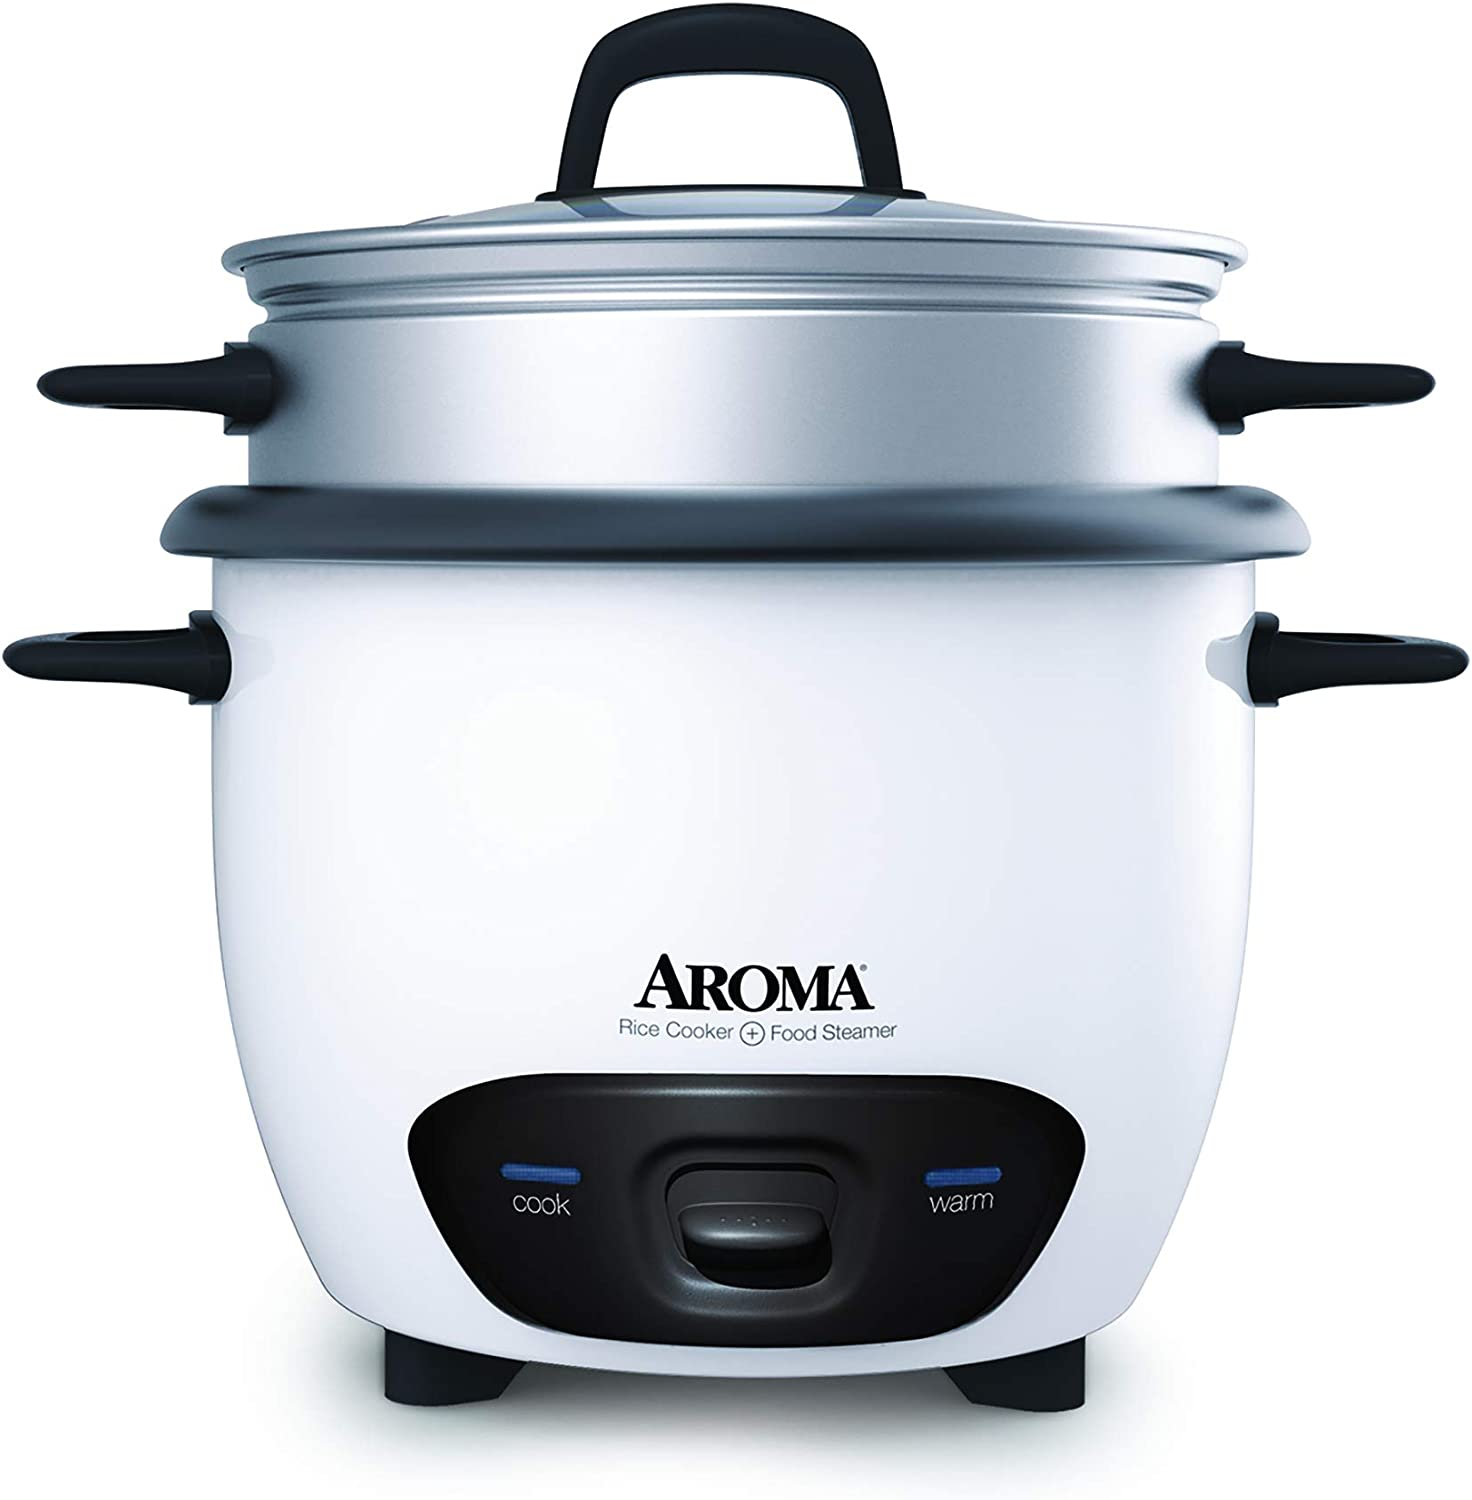 Aroma Housewares 6-Cup (Cooked) (3-Cup Uncooked) Pot Style Rice Cooker and Food Steamer (ARC-743-1NG), White